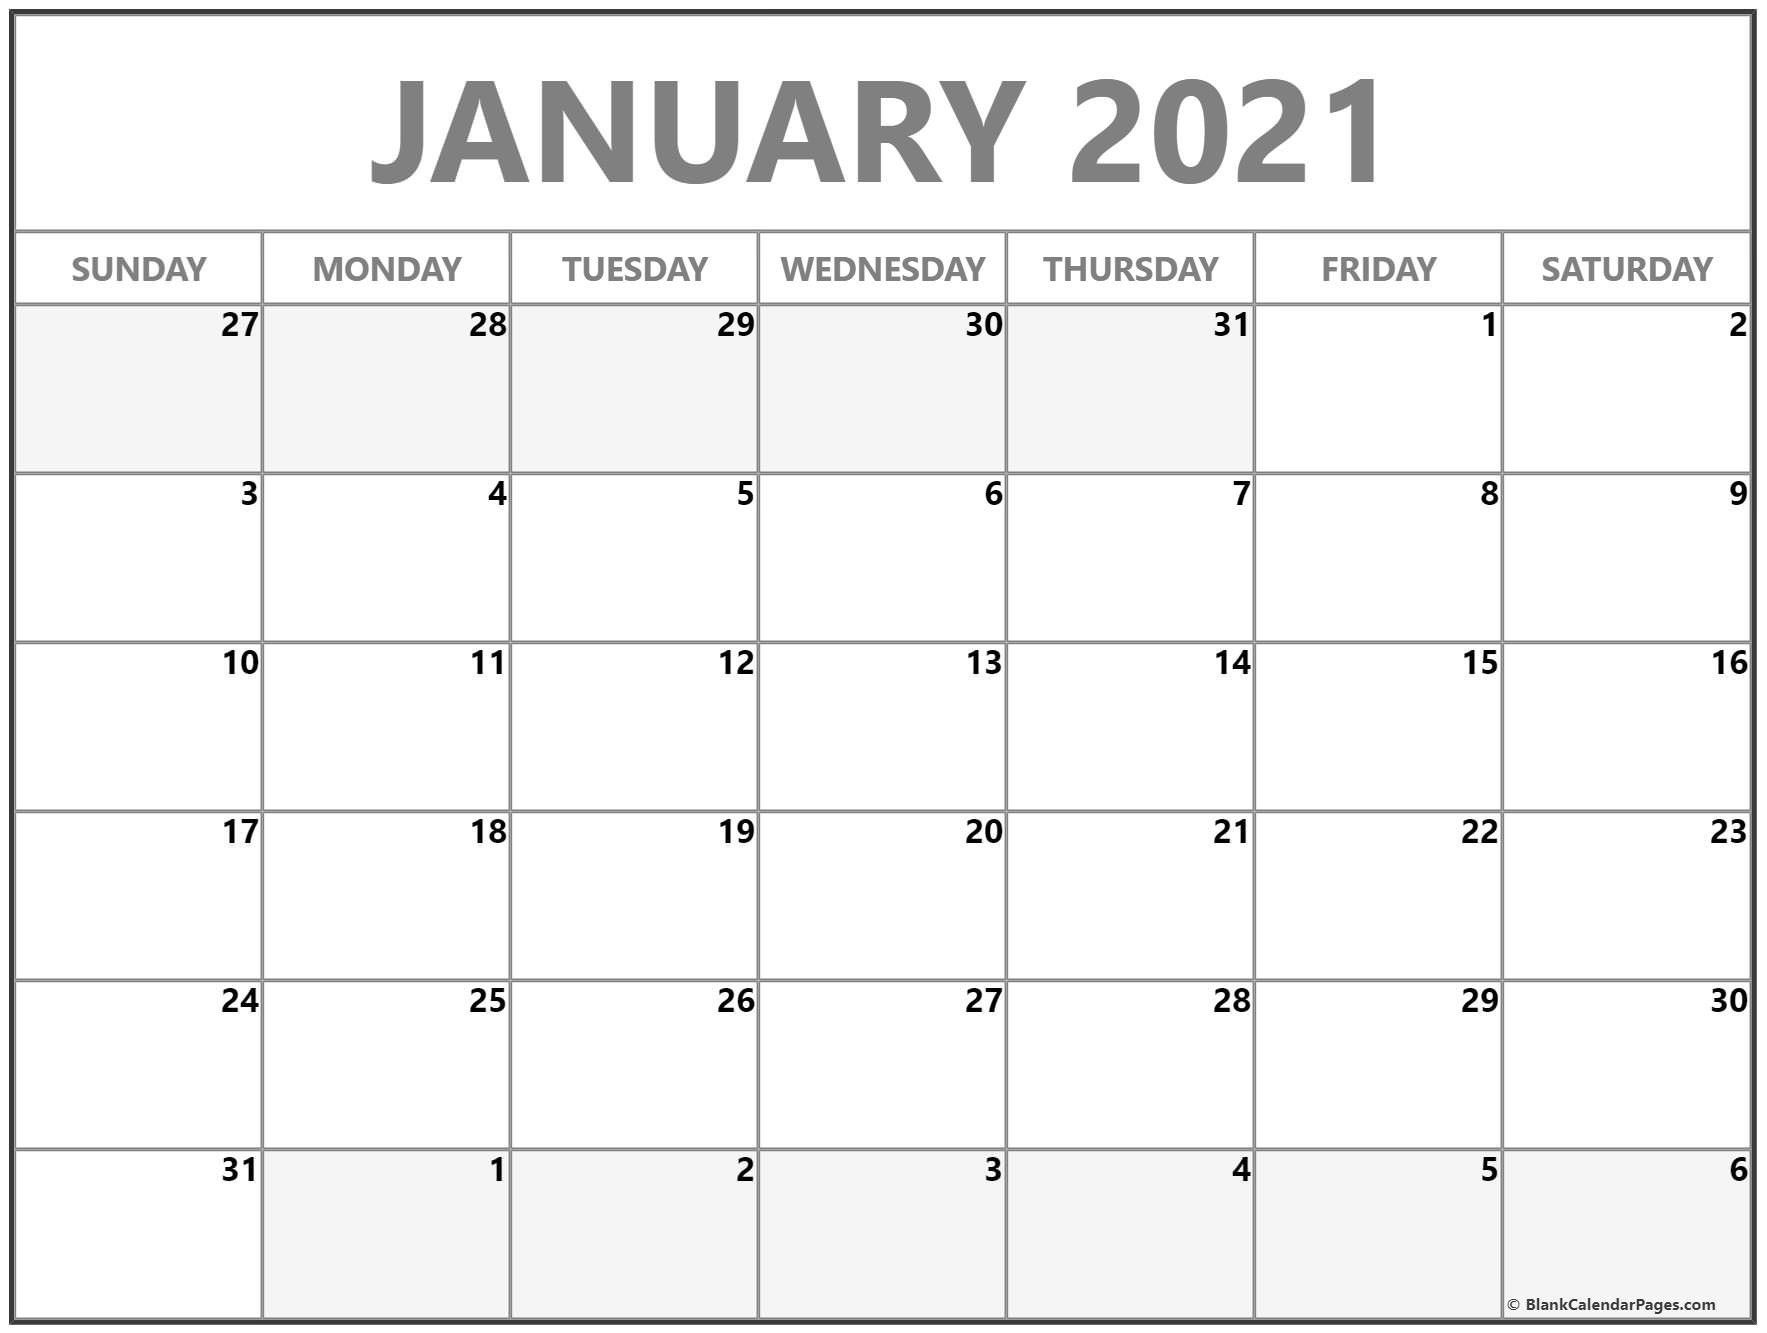 January February 2021 Calendar Template In 2020 Printable Blank Calendar Printable Calendar Design Printable Calendar Template